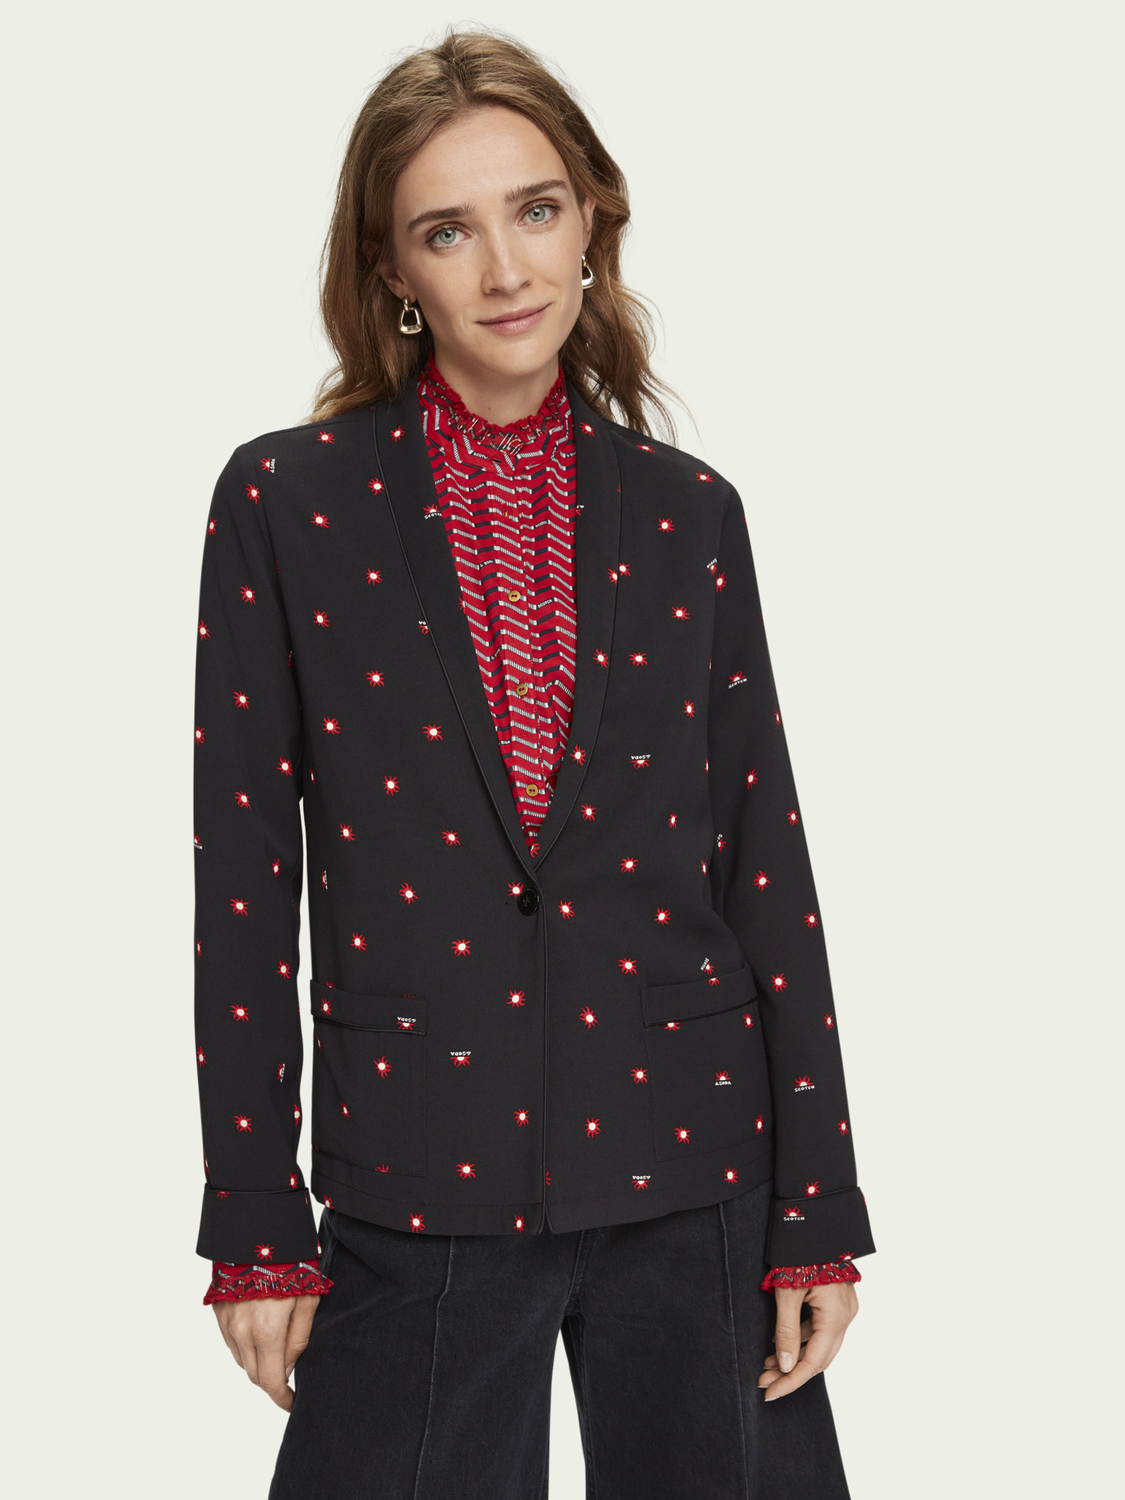 Women All-over printed blazer